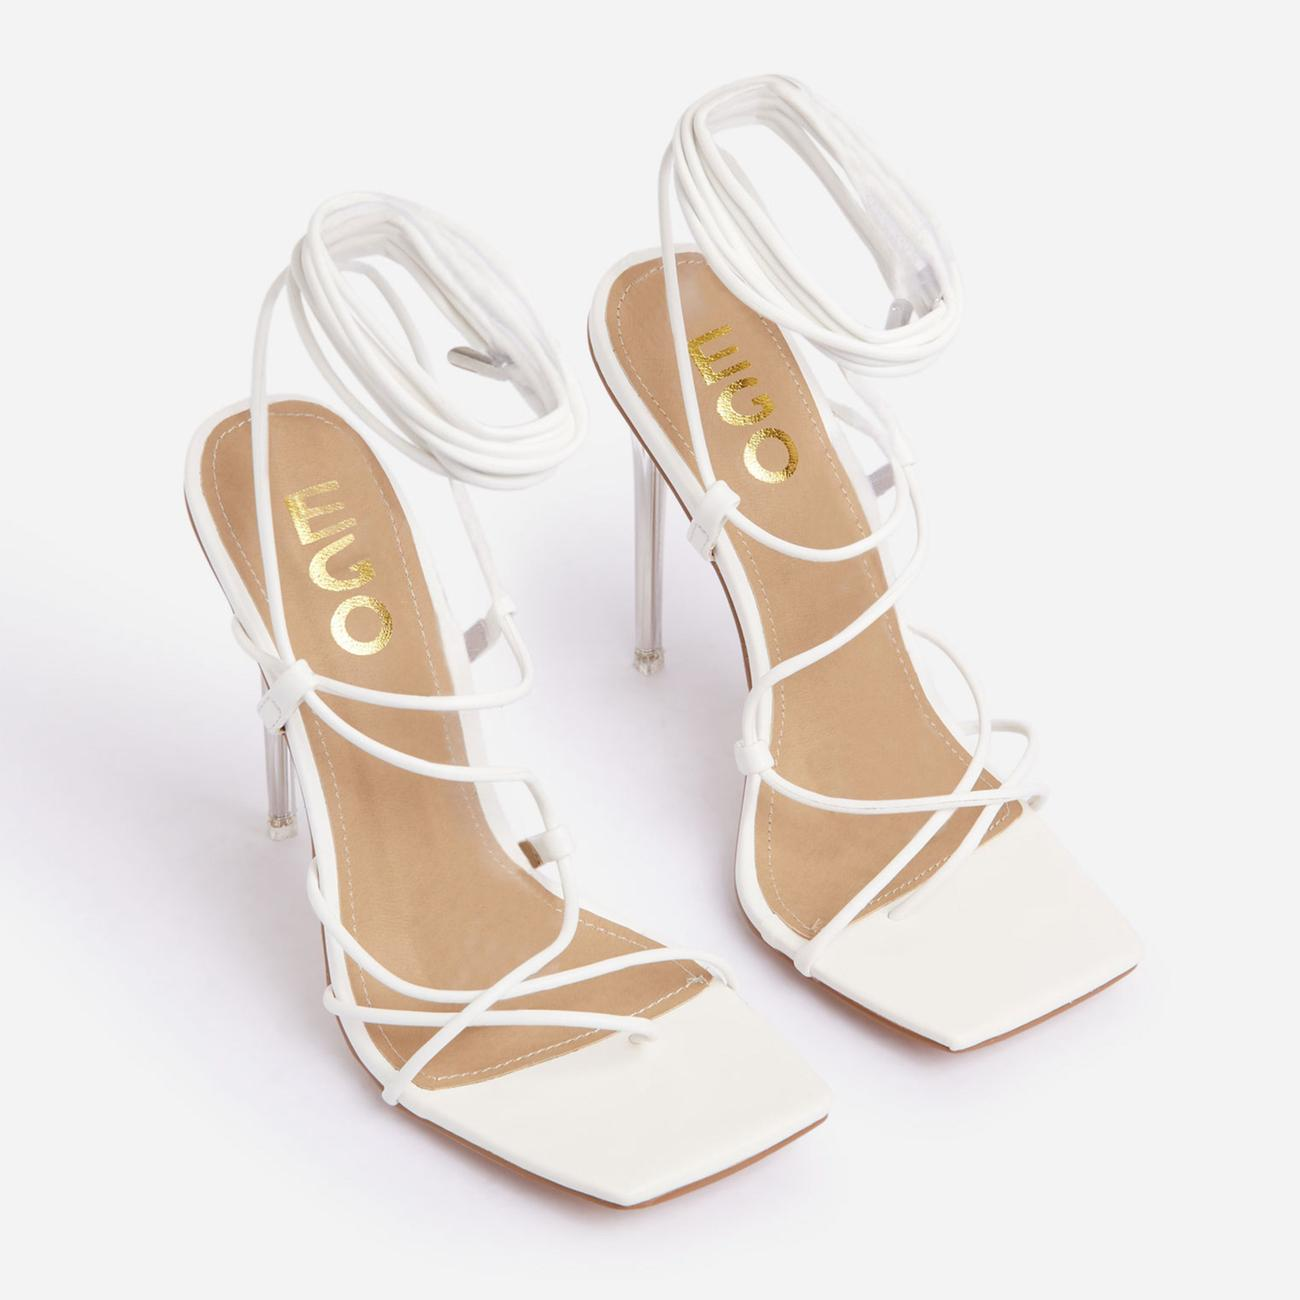 Sunbathe Square Toe Lace Up Clear Perspex Heel In White Faux Leather Image 2